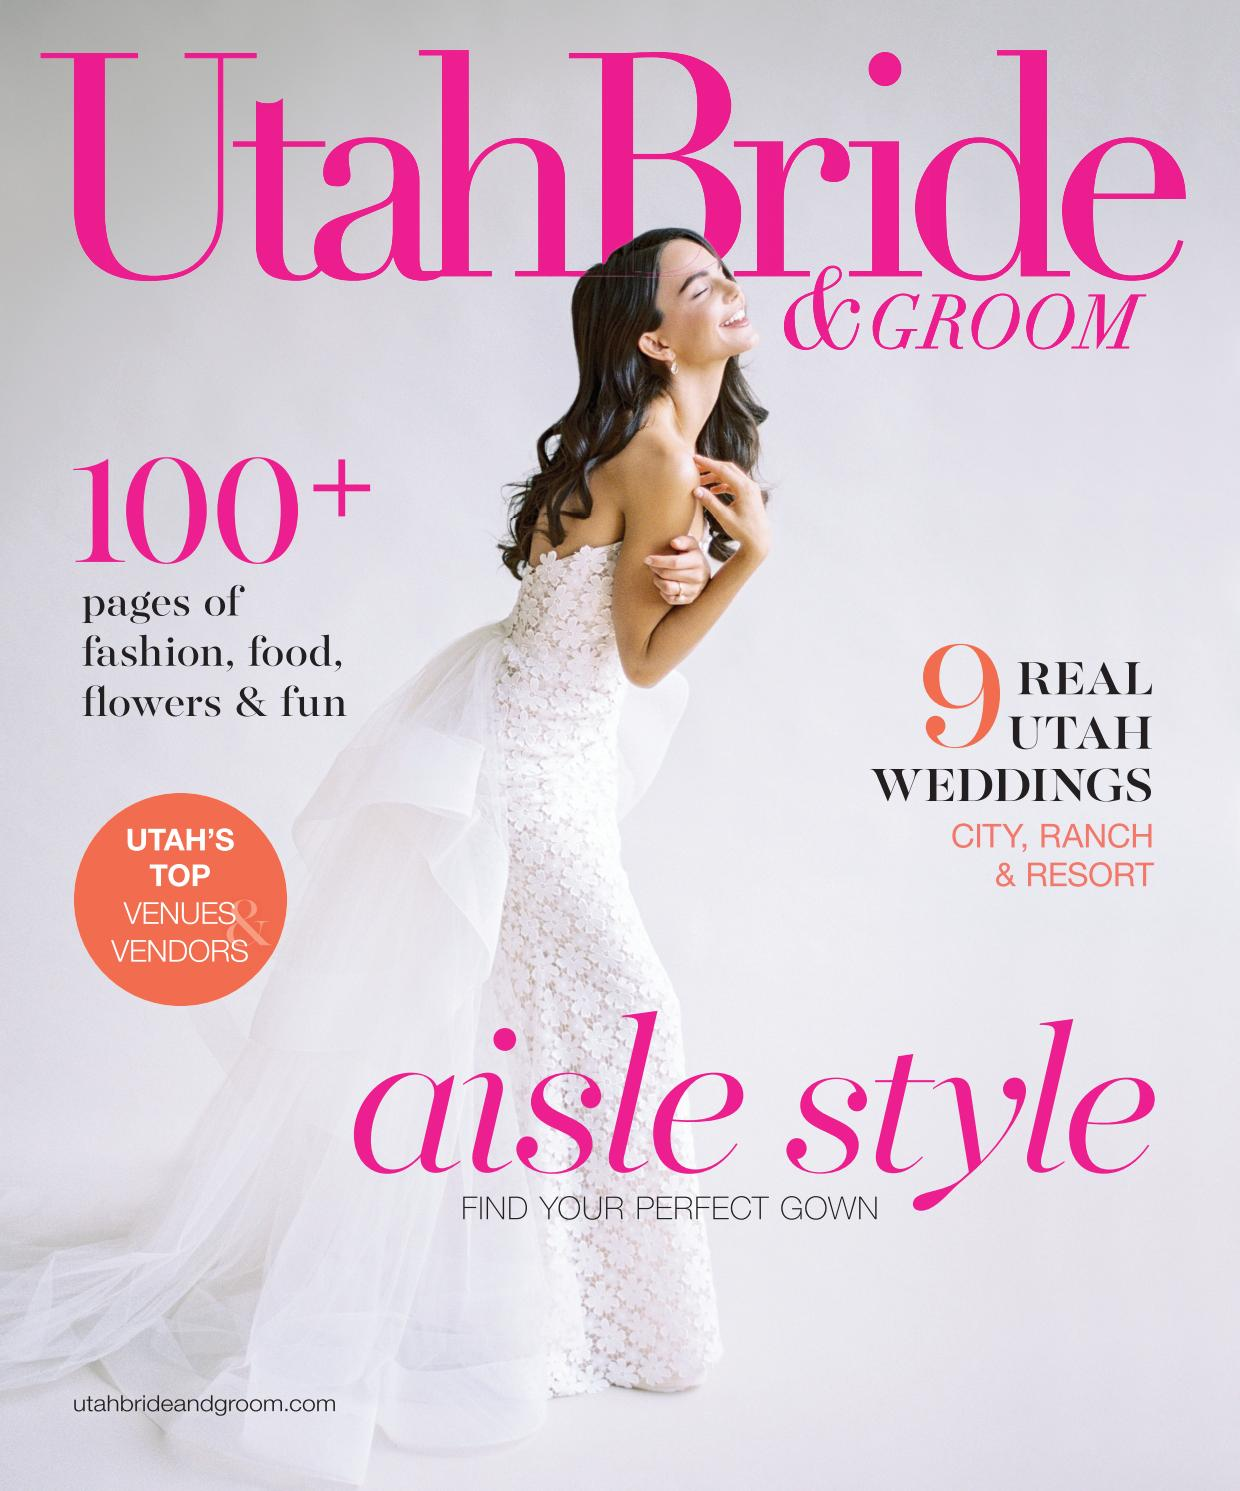 a43ed8462096 Utah Bride and Groom Spring - Winter 2018 by Utah Bride & Groom - issuu